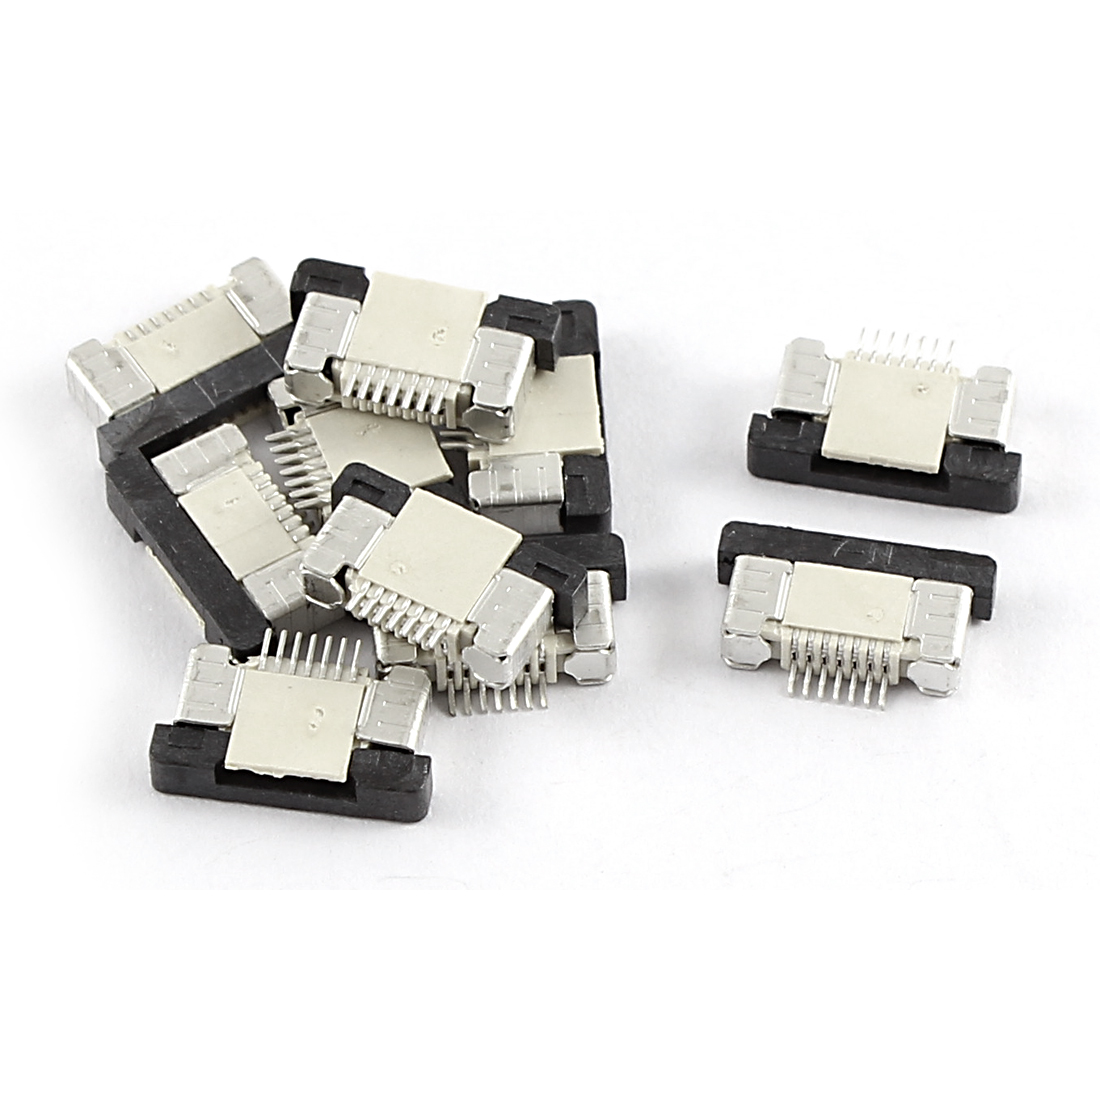 10Pcs Bottom Port 7Pin 0.5mm Pitch FFC FPC Ribbon Sockets Connector